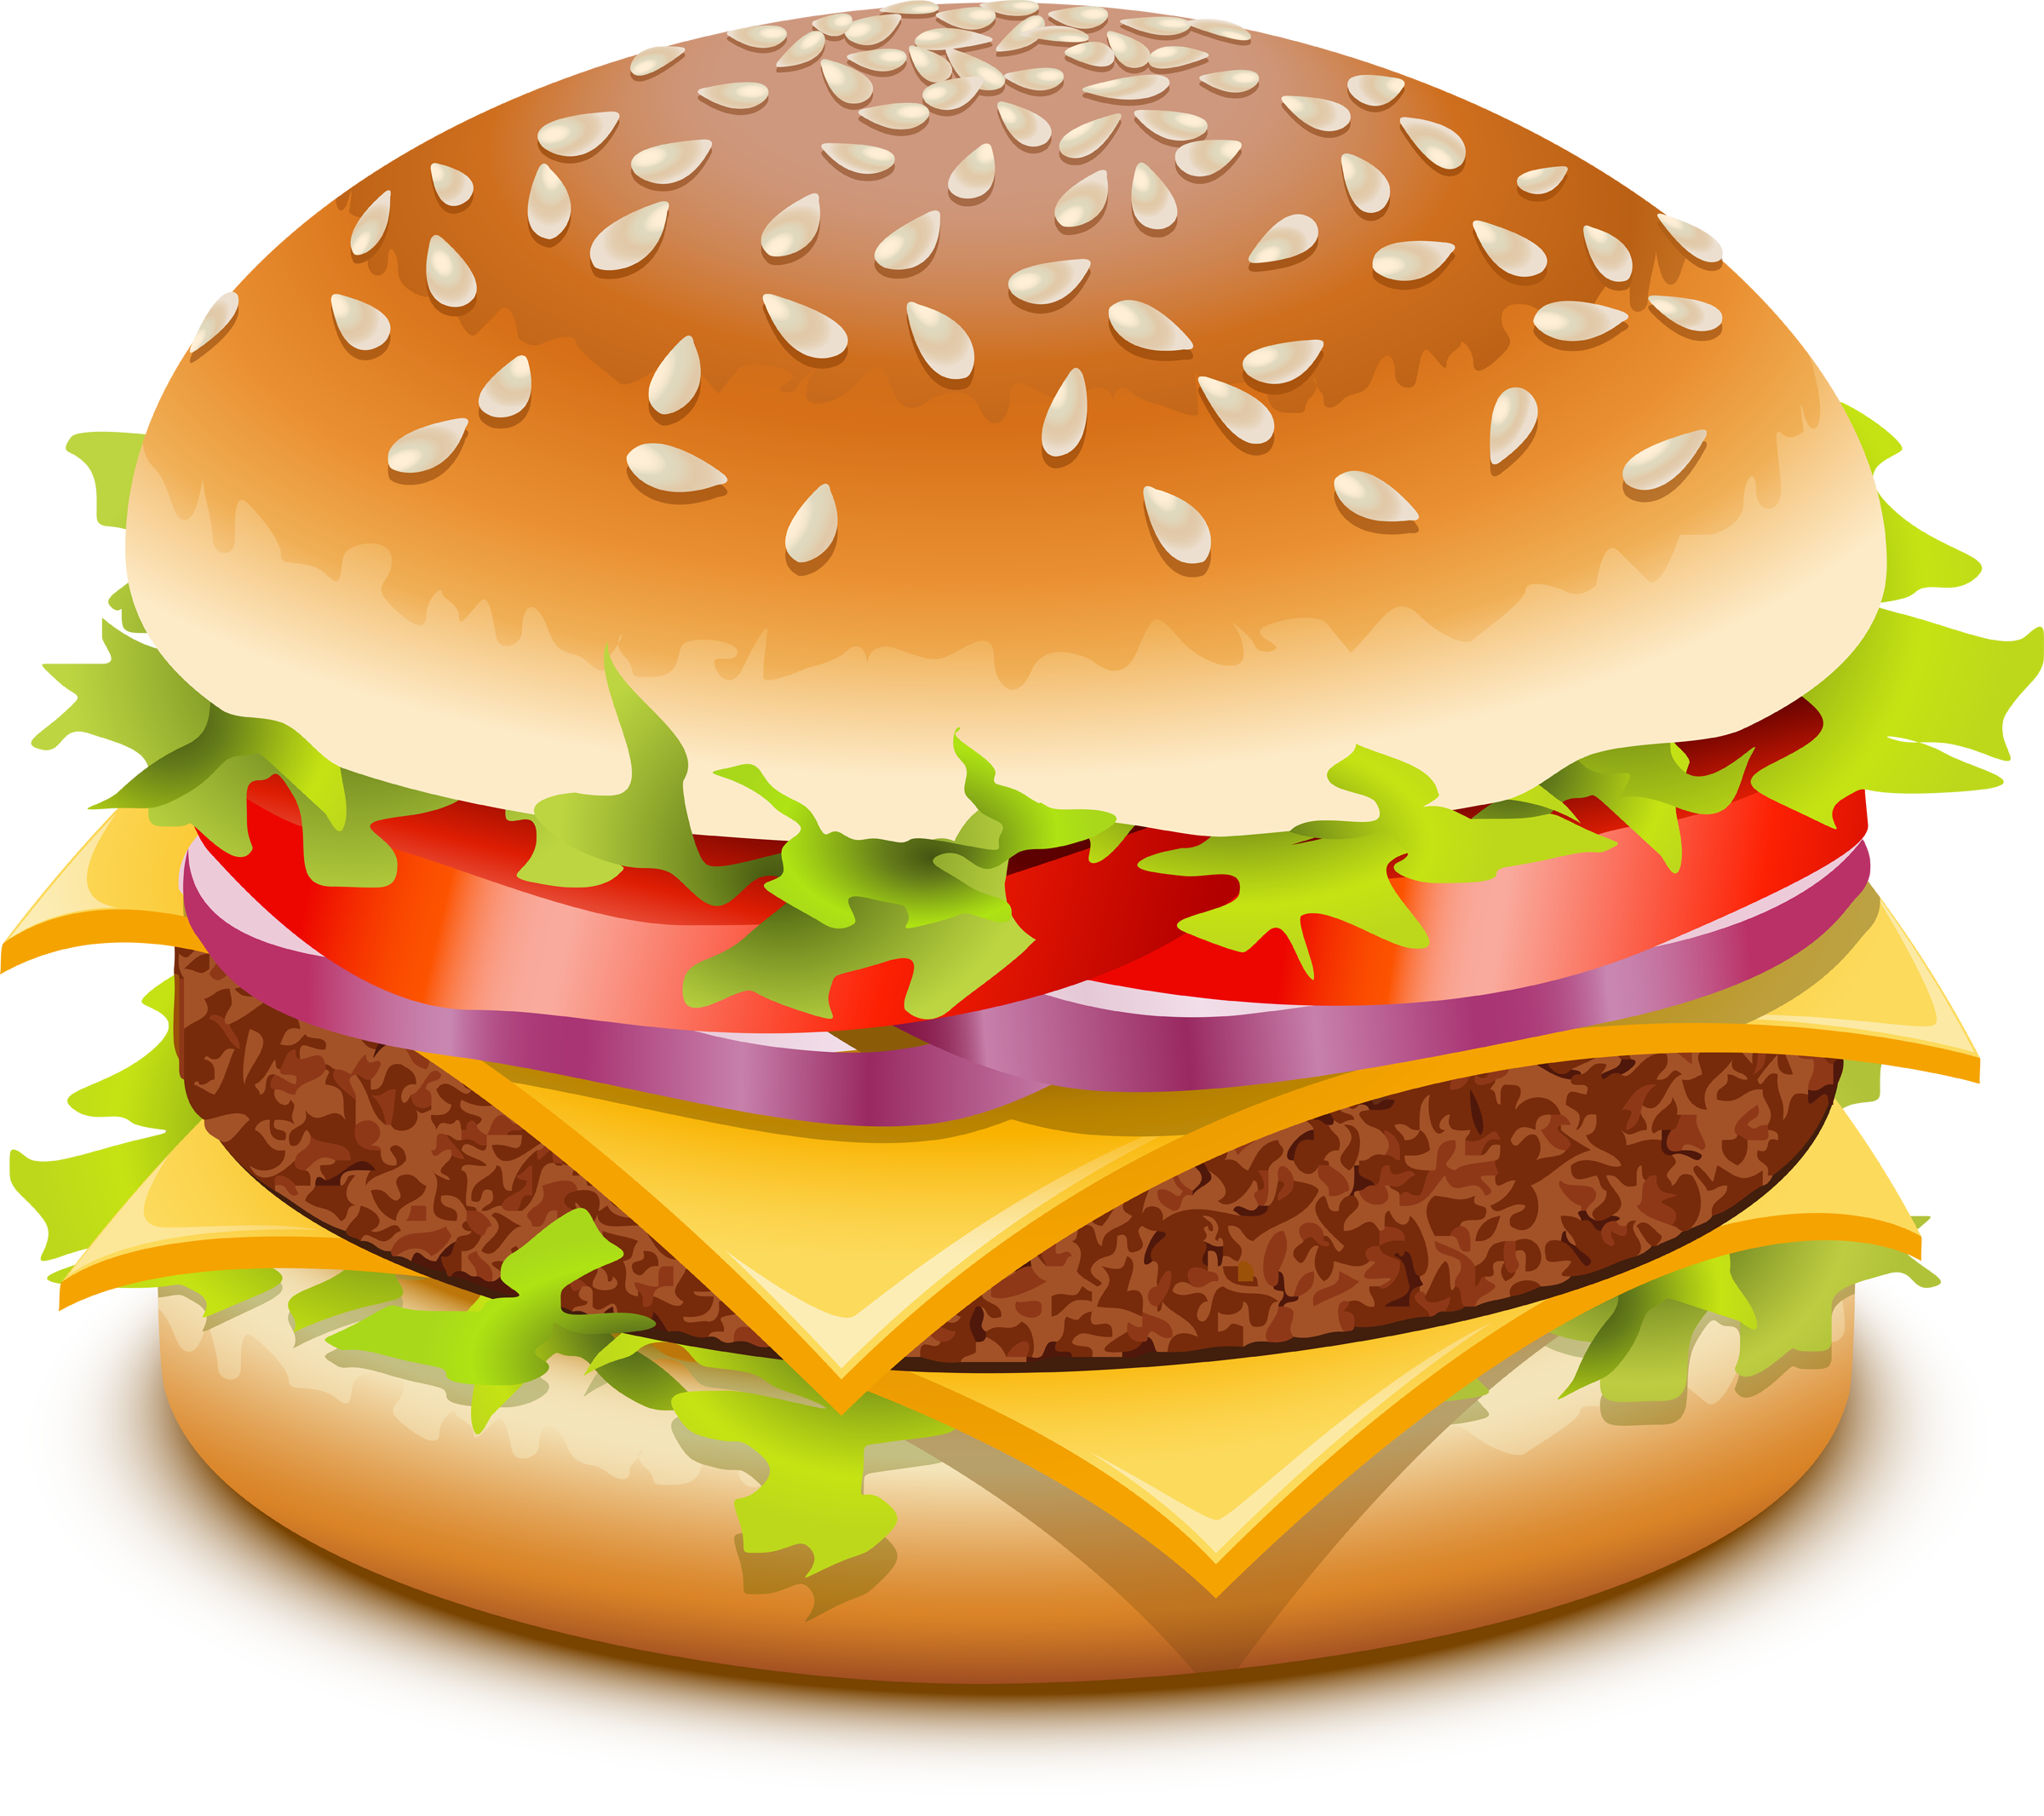 Clipart chicken sandwhich. Free clip art collection